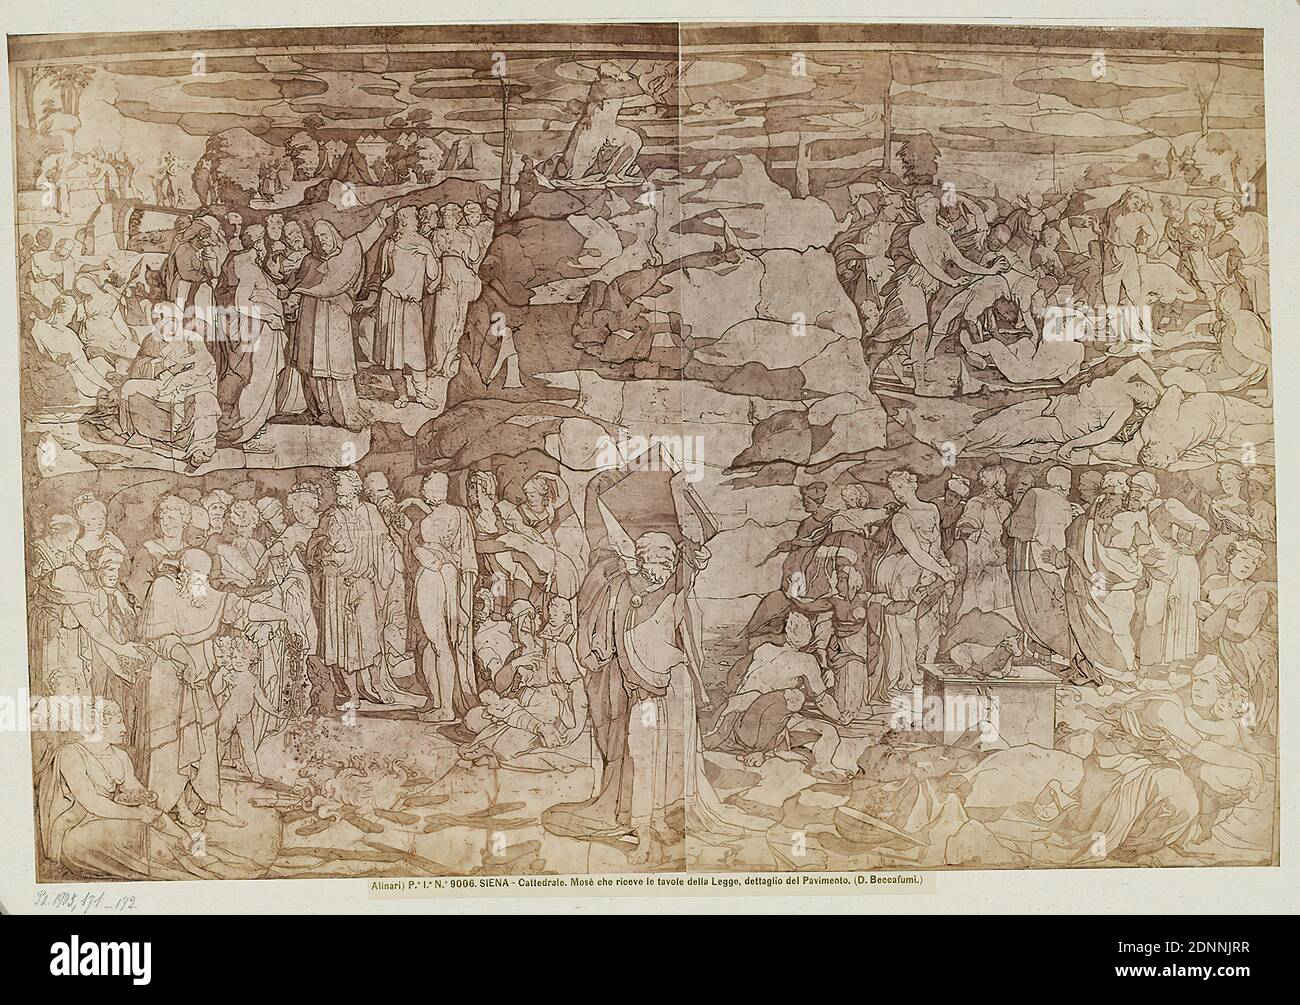 Domenico Beccafumi: Moses receives the law tablets, detail of the floor in the Cathedral of Siena, albumin paper, black and white positive process, image size: height: 24,60 cm; width: 36,80 cm, title copied below the photograph SIENA - Cattedrale. Mosè che riceve le tavole della Legge, dettaglio del Pavimento. (D. Beccafumi.), Moses with the law tablets on Mount Sinai, floor (architecture), art Stock Photo